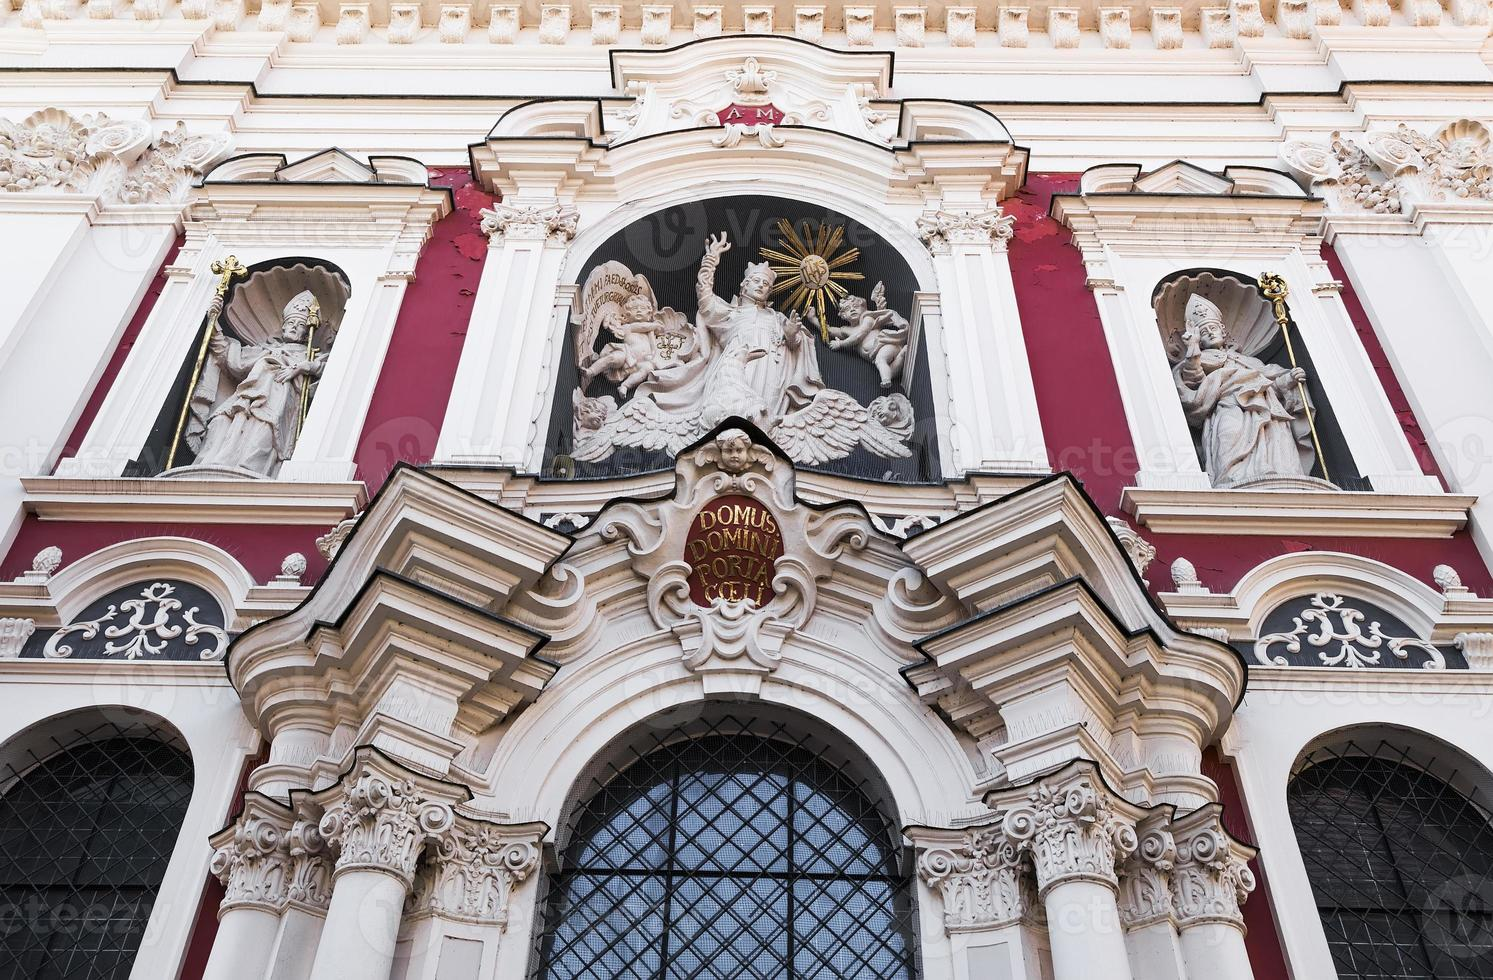 Detail of the facade of the Church photo